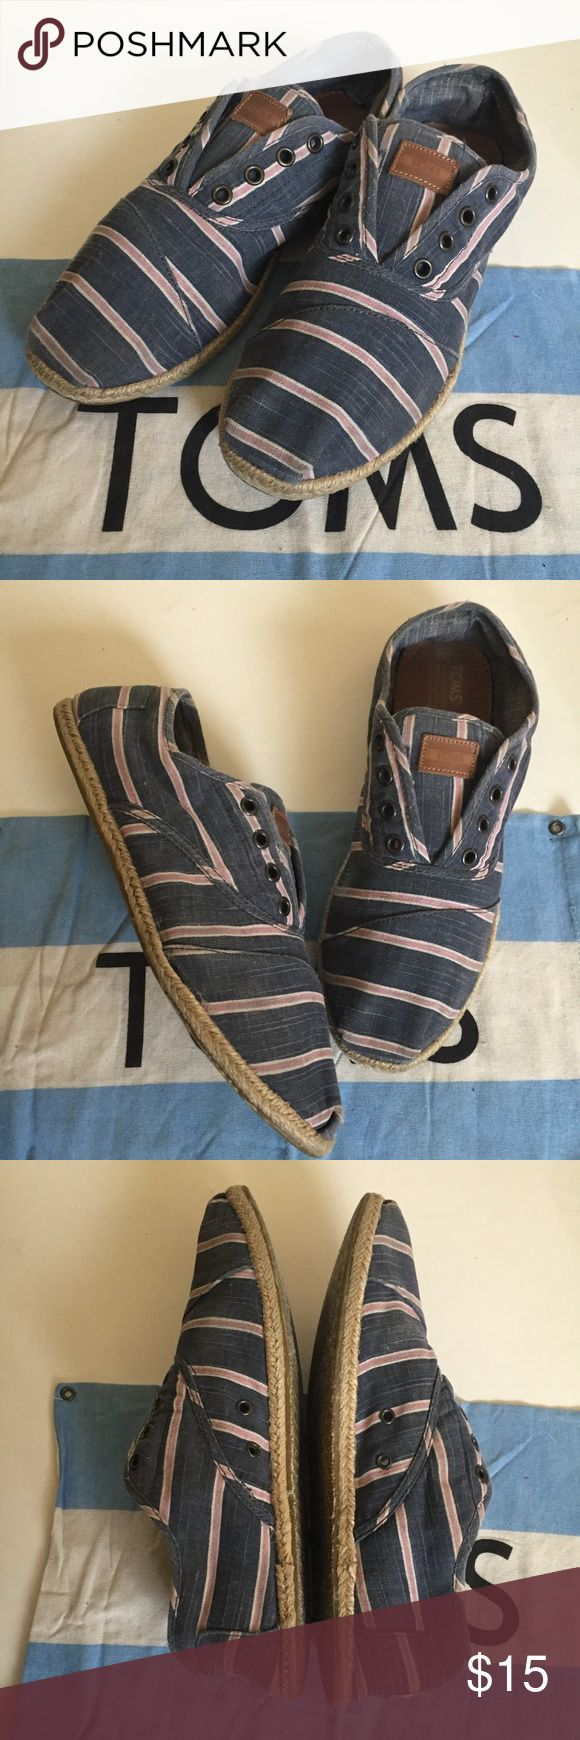 Men's TOMS Espadrilles 10 Pre owned men's TOMS Espadrilles style.  Size 10.  Good normal used condition, pet/smoke free home Toms Shoes Loafers & Slip-Ons